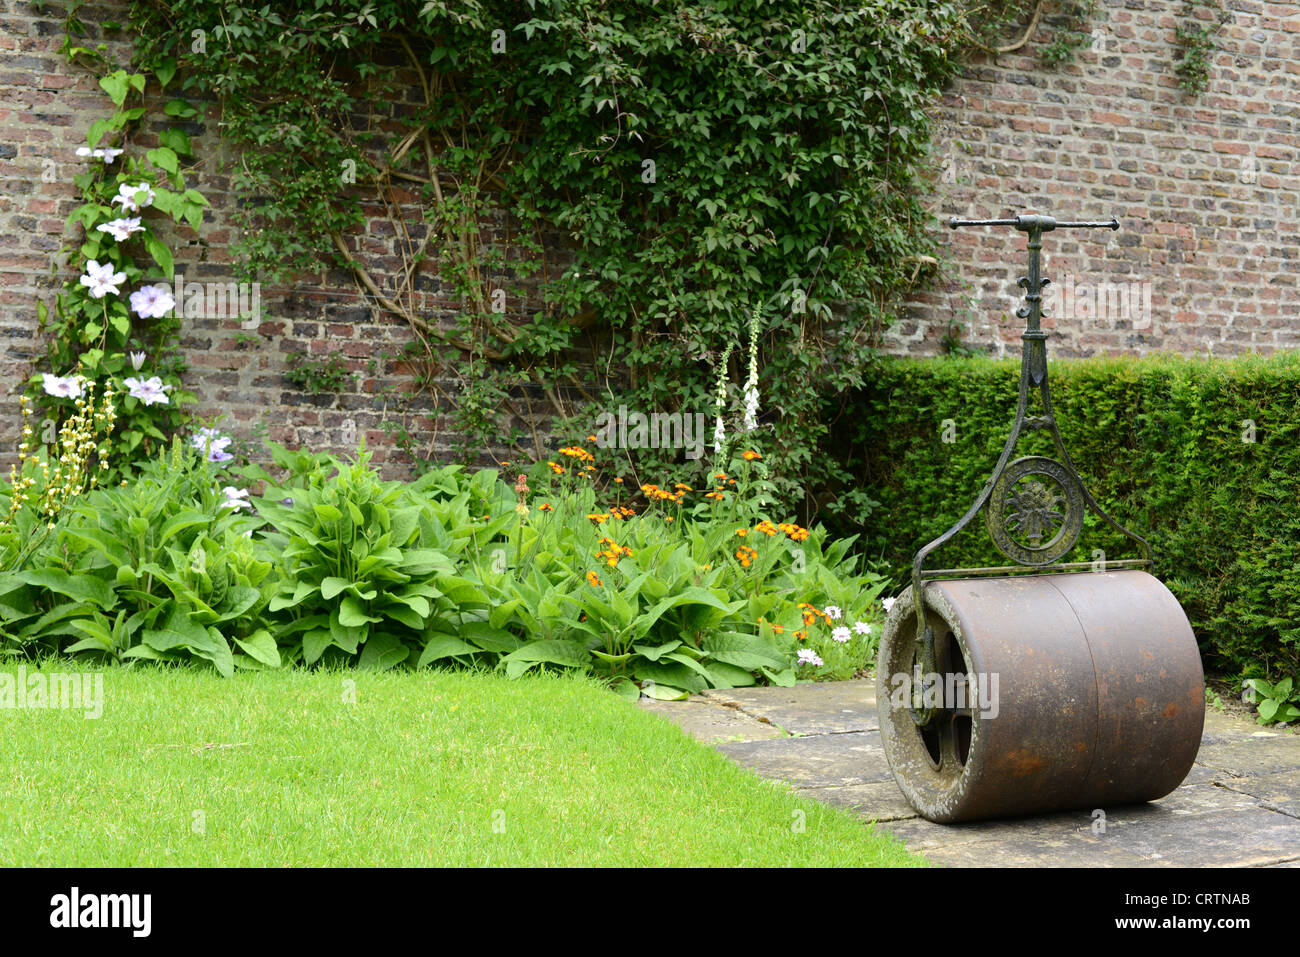 lawn roller in walled garden - Stock Image